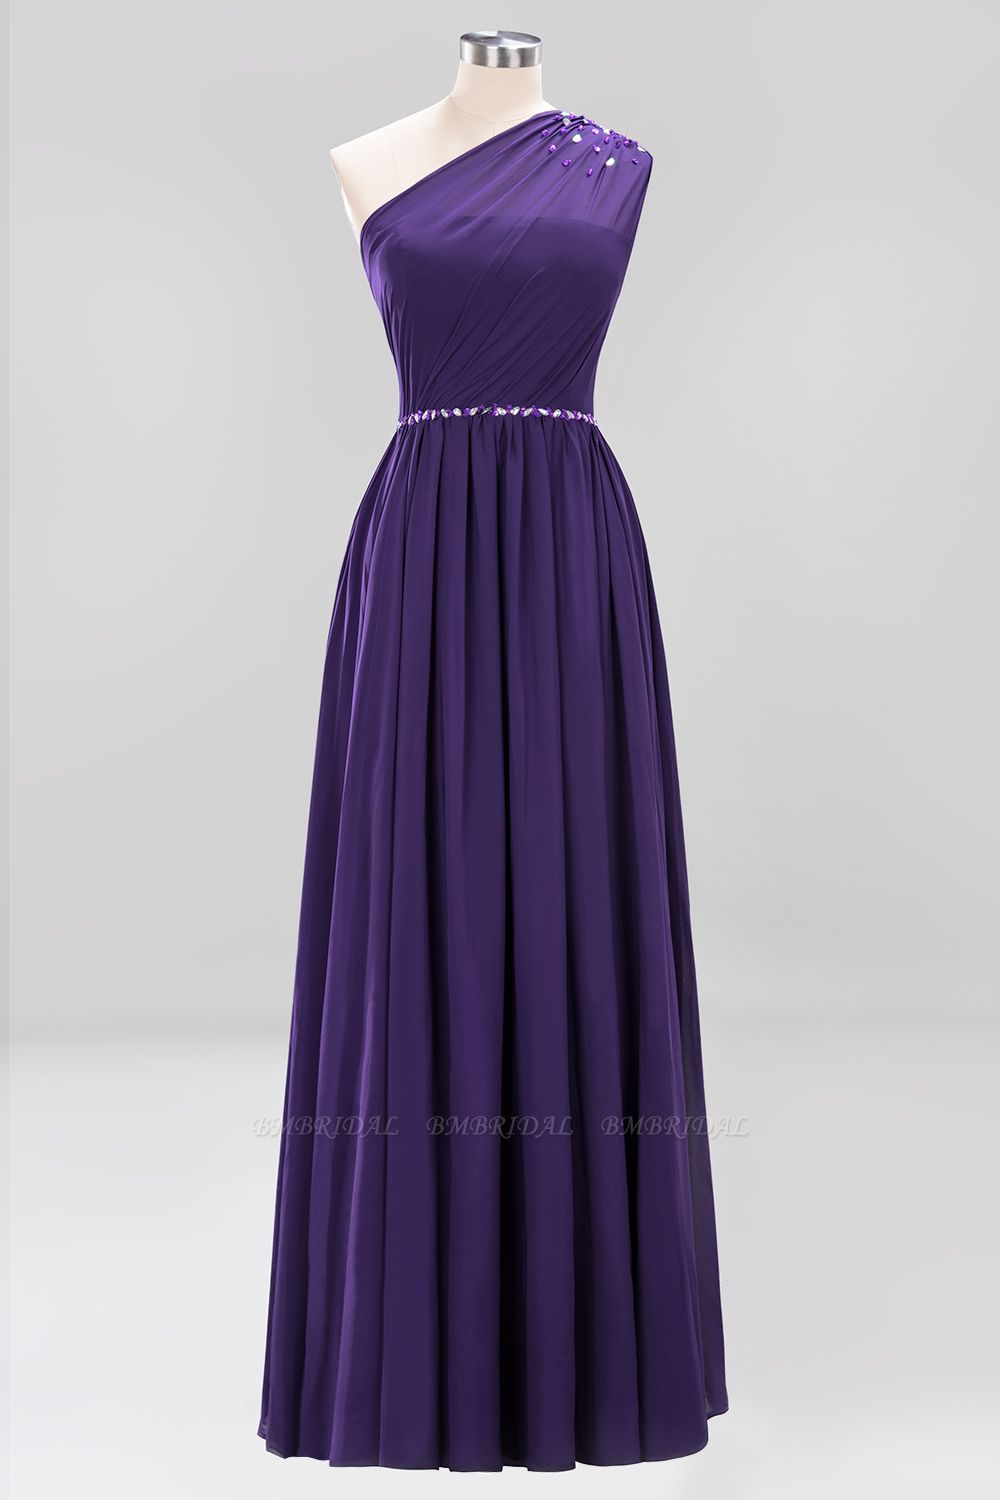 Modest One-shoulder Royal Blue Affordable Bridesmaid Dress with Beadings